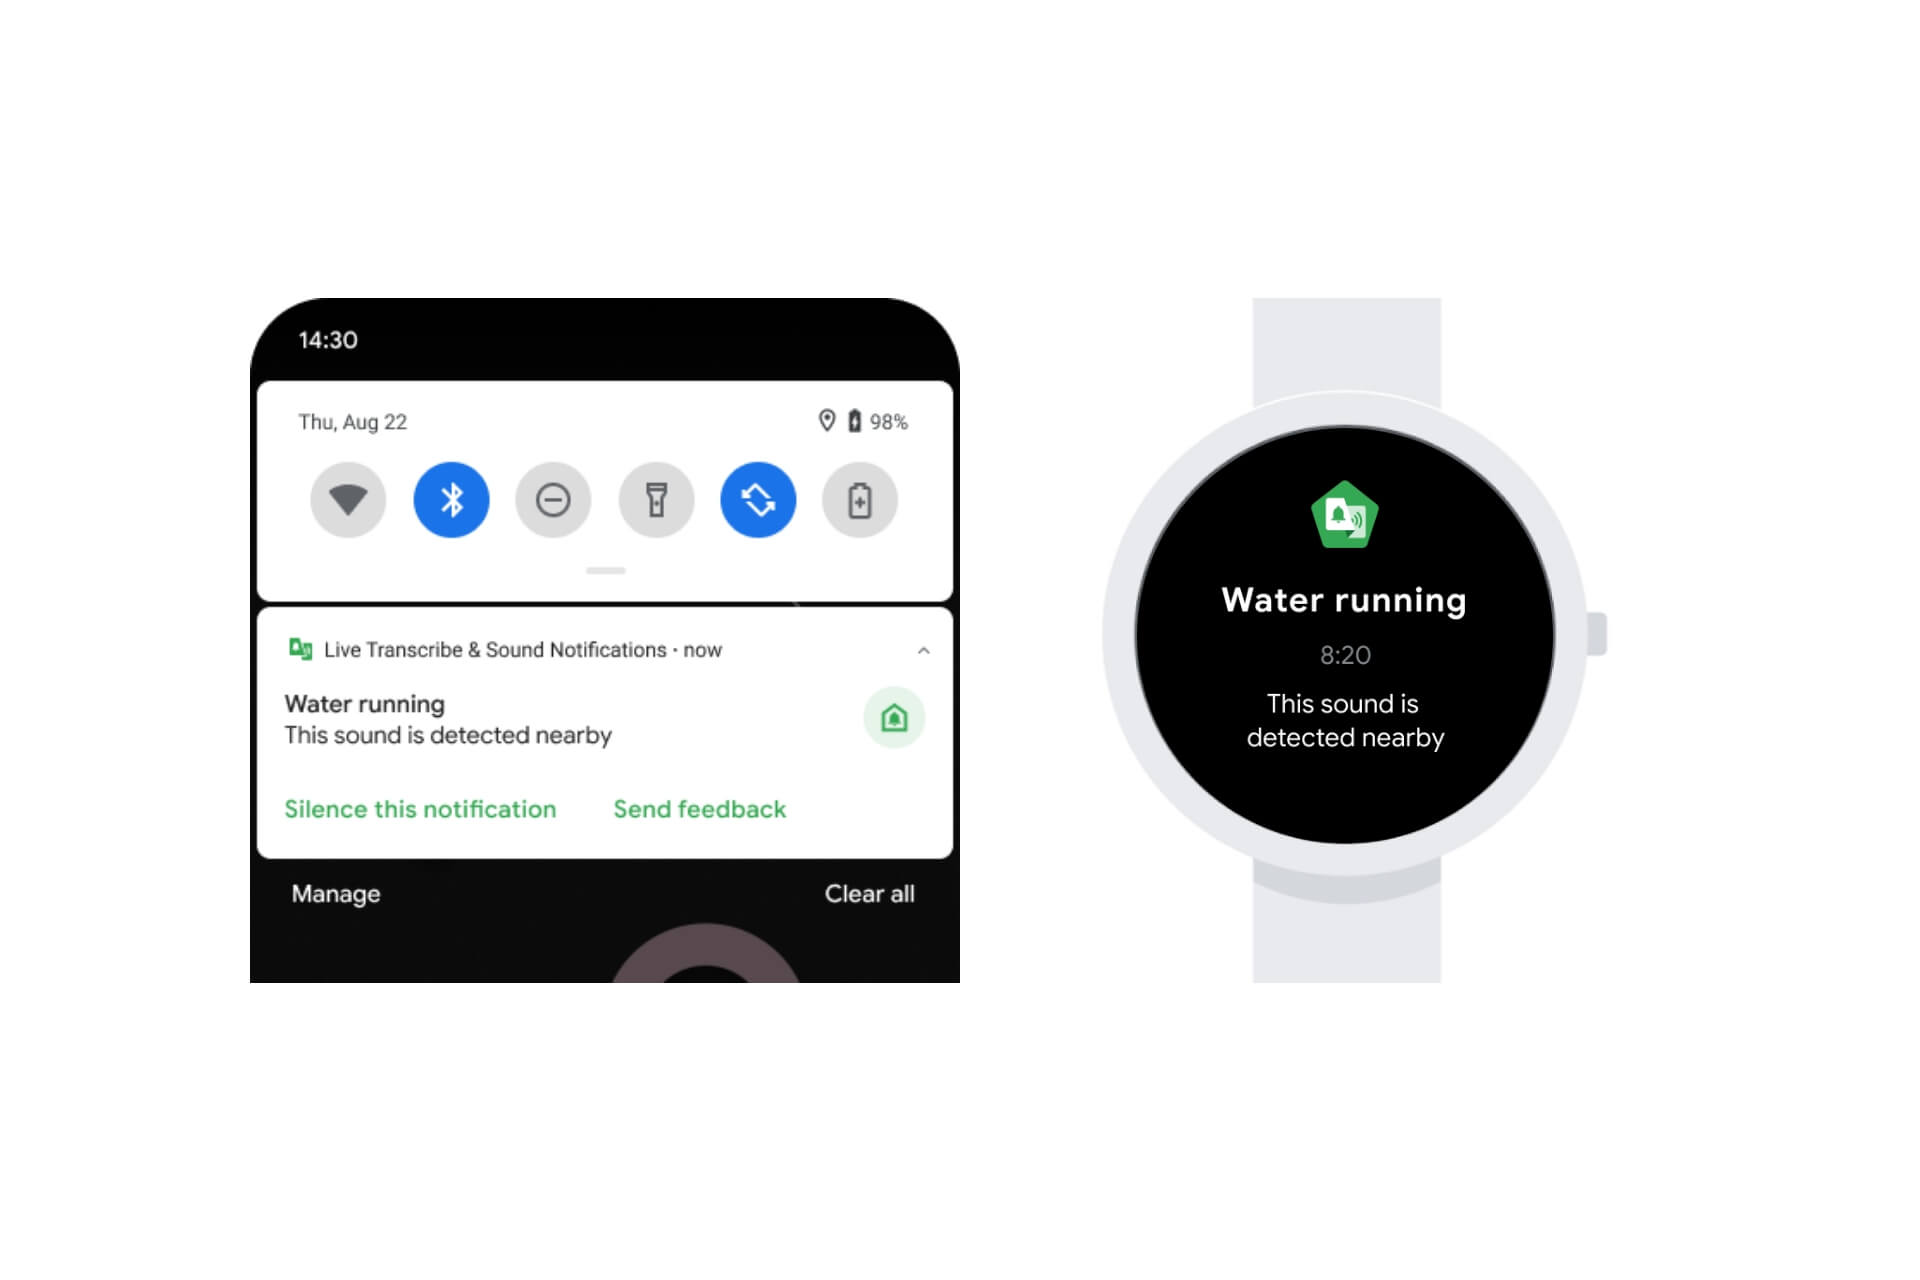 Google introduced a new Sound Notifications feature on Android to push notifications for critical sounds around you